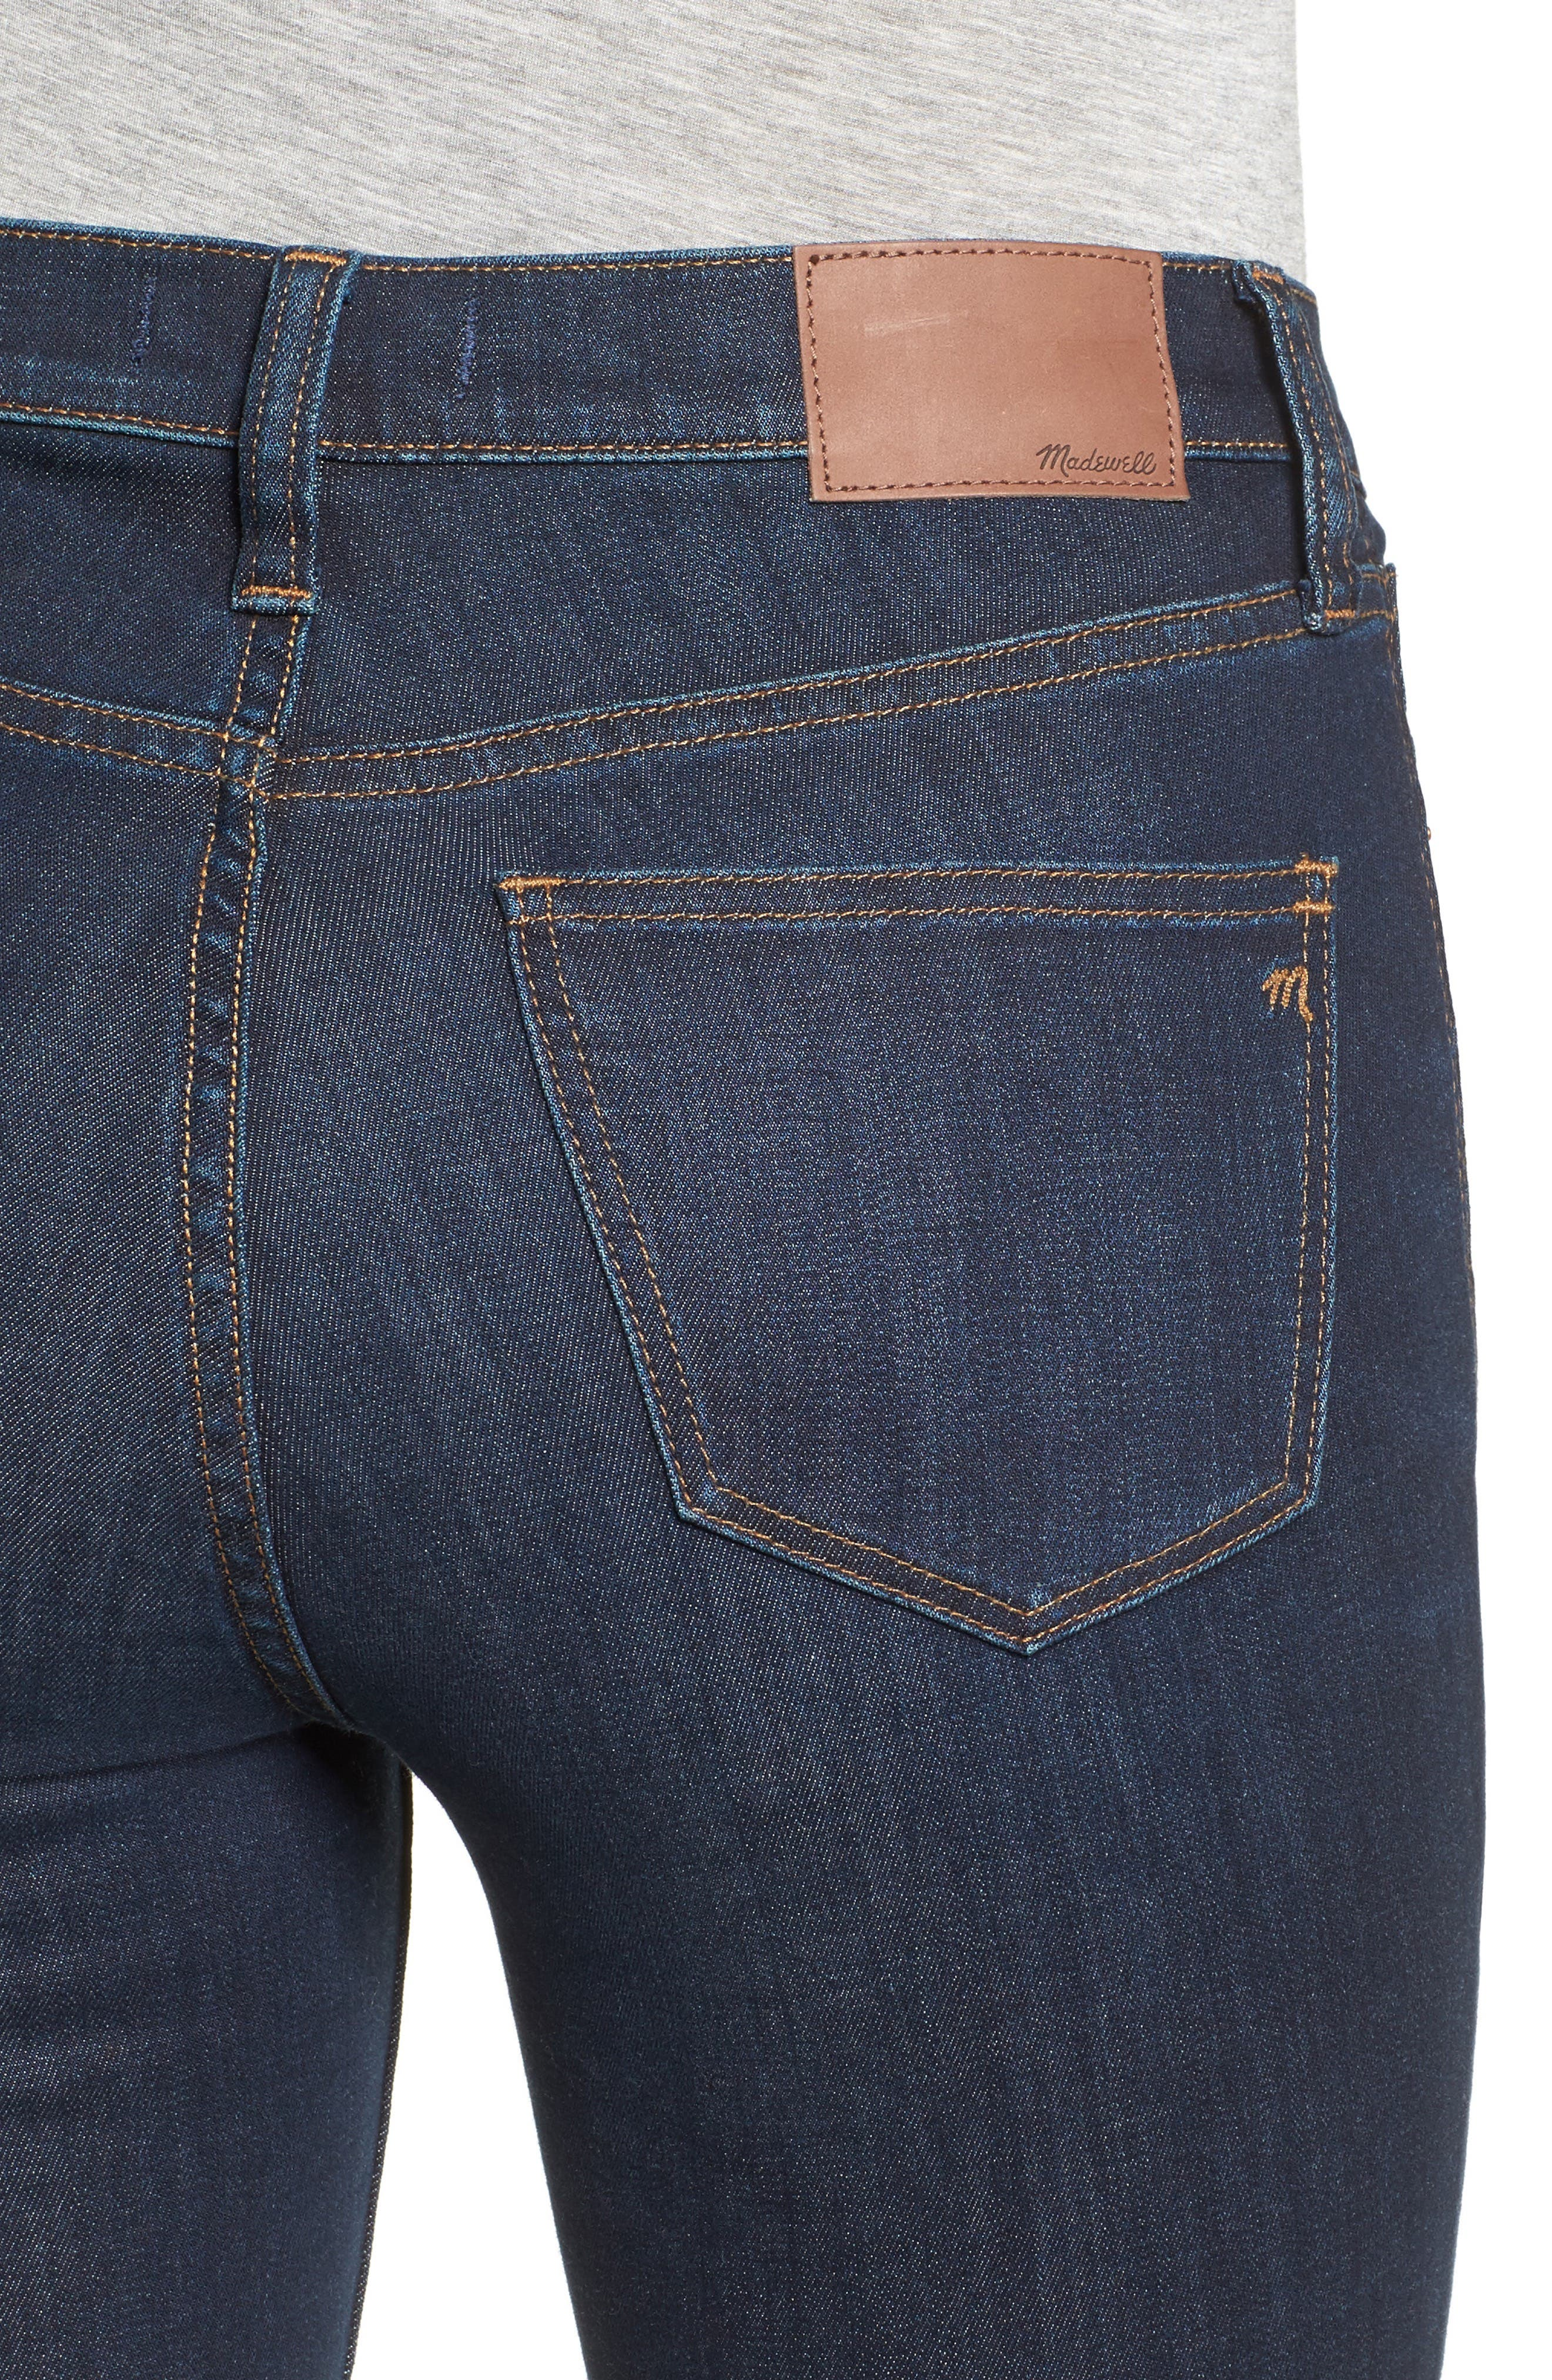 MADEWELL, 9-Inch High Rise Skinny Jeans, Alternate thumbnail 6, color, LARKSPUR